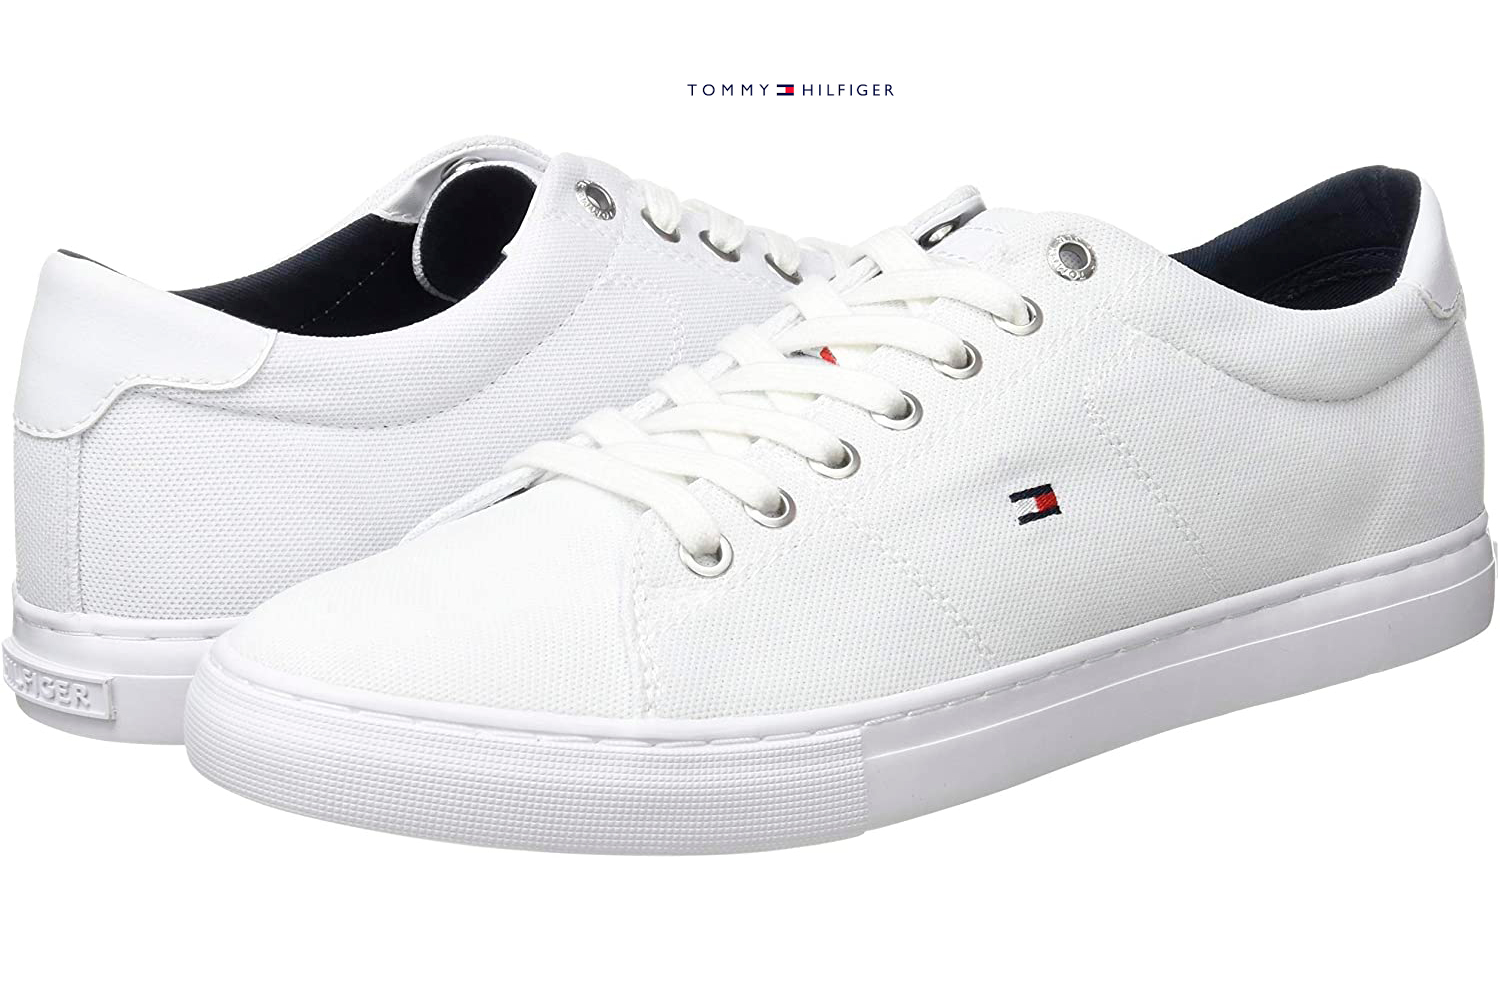 Tommy Hilfiger Seasonal baratas